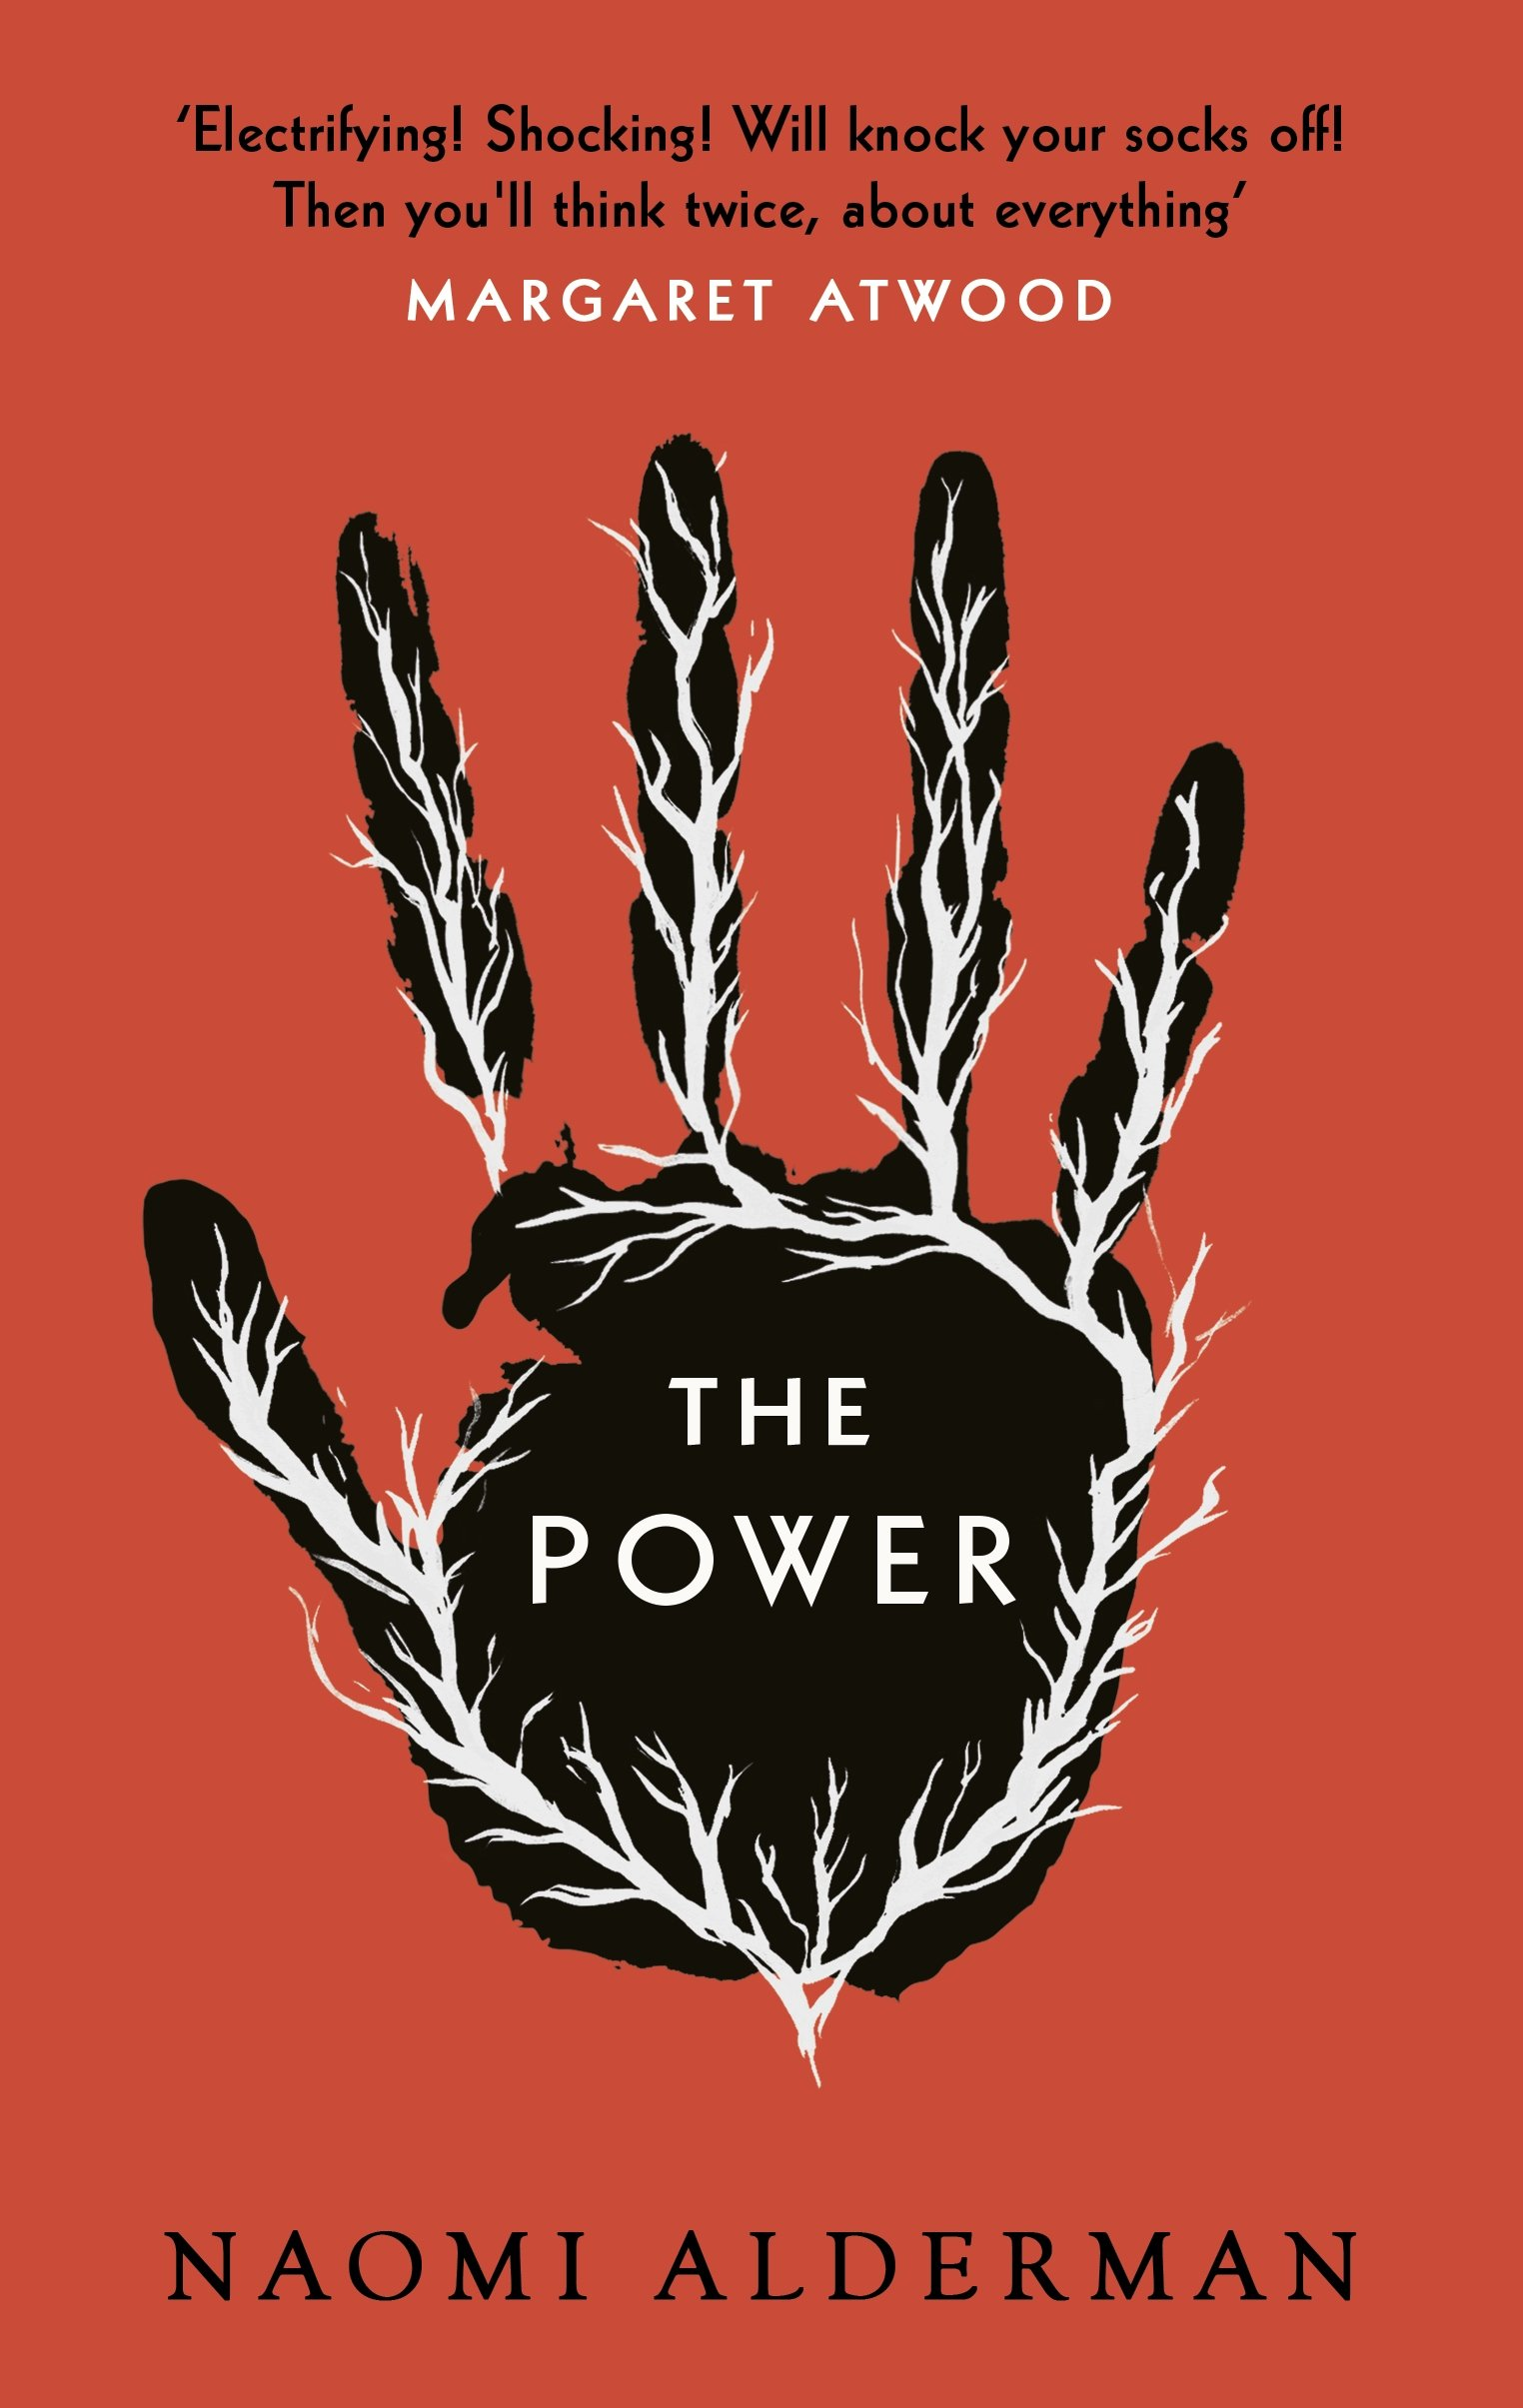 The Power by Naomi Alderman, published by Viking Books